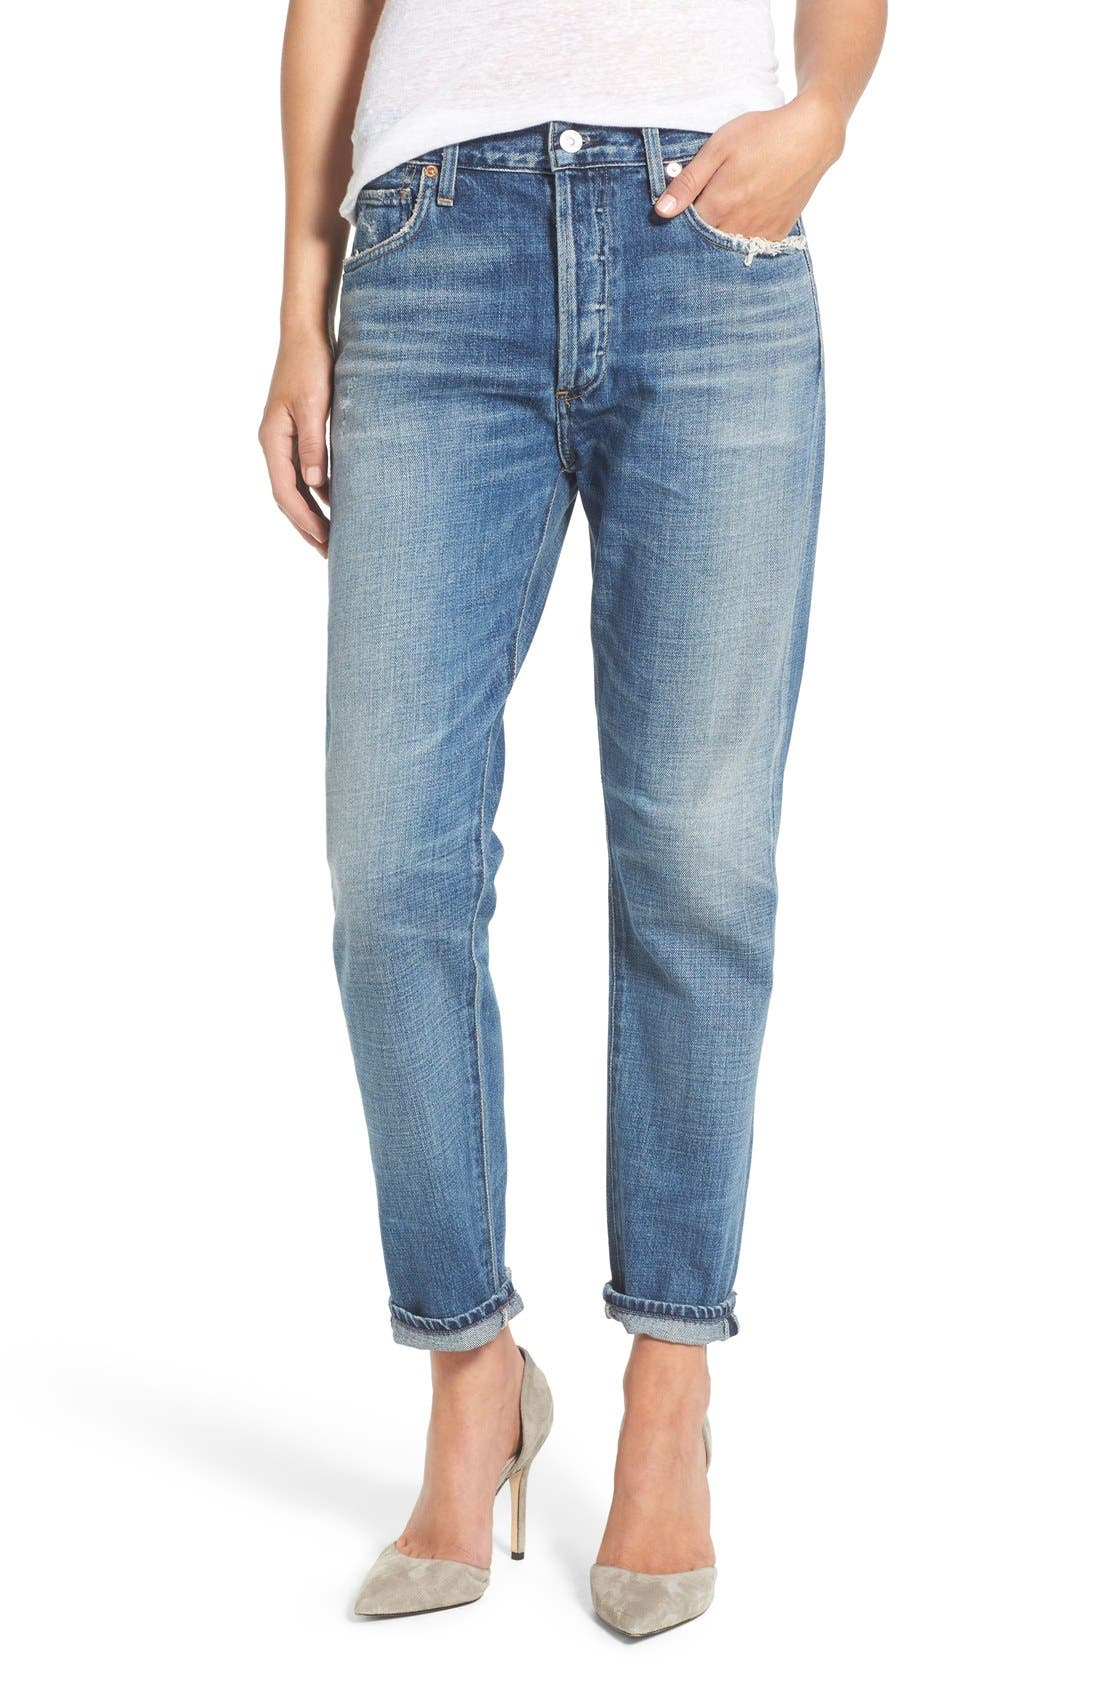 Main Image - Citizens of Humanity Liya High Waist Slim Boyfriend Jeans (Fade Out)